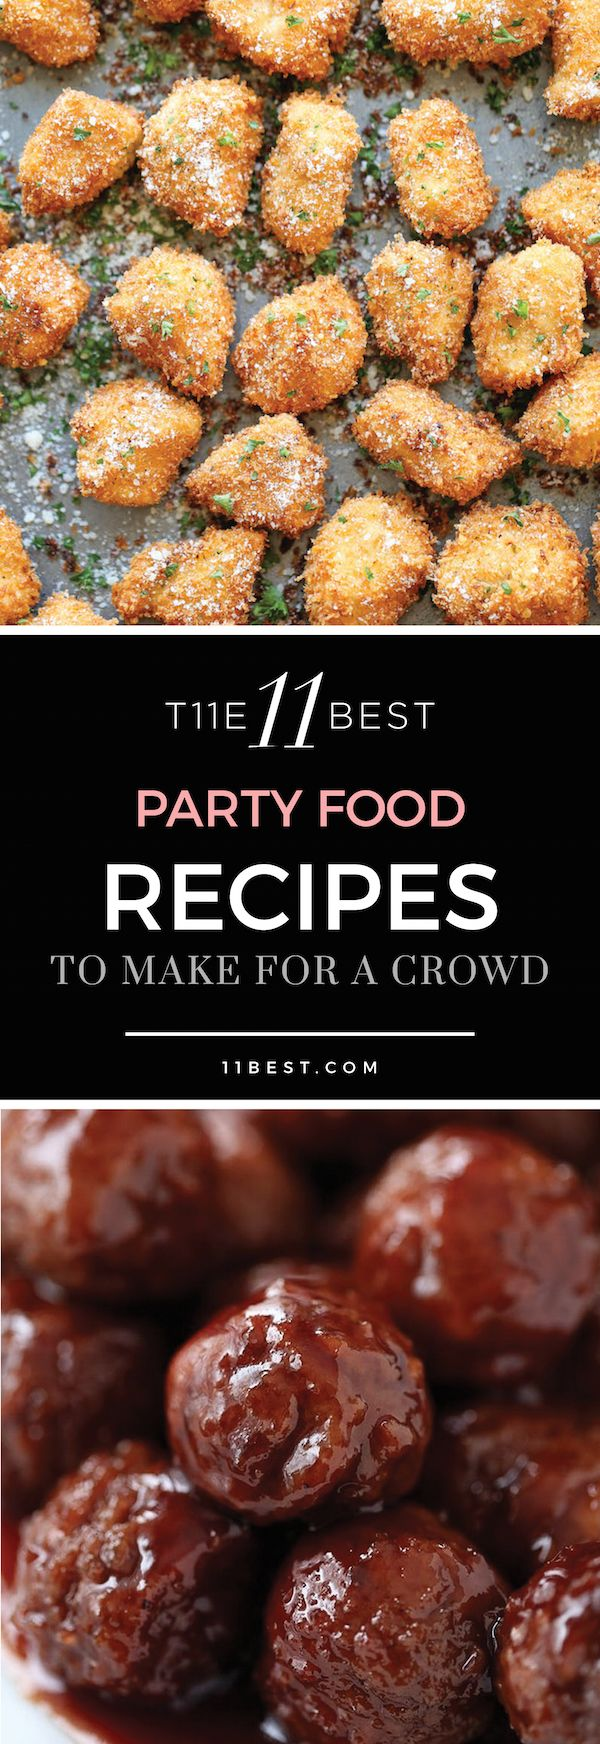 Featured image for The 11 Best Party Food Recipes